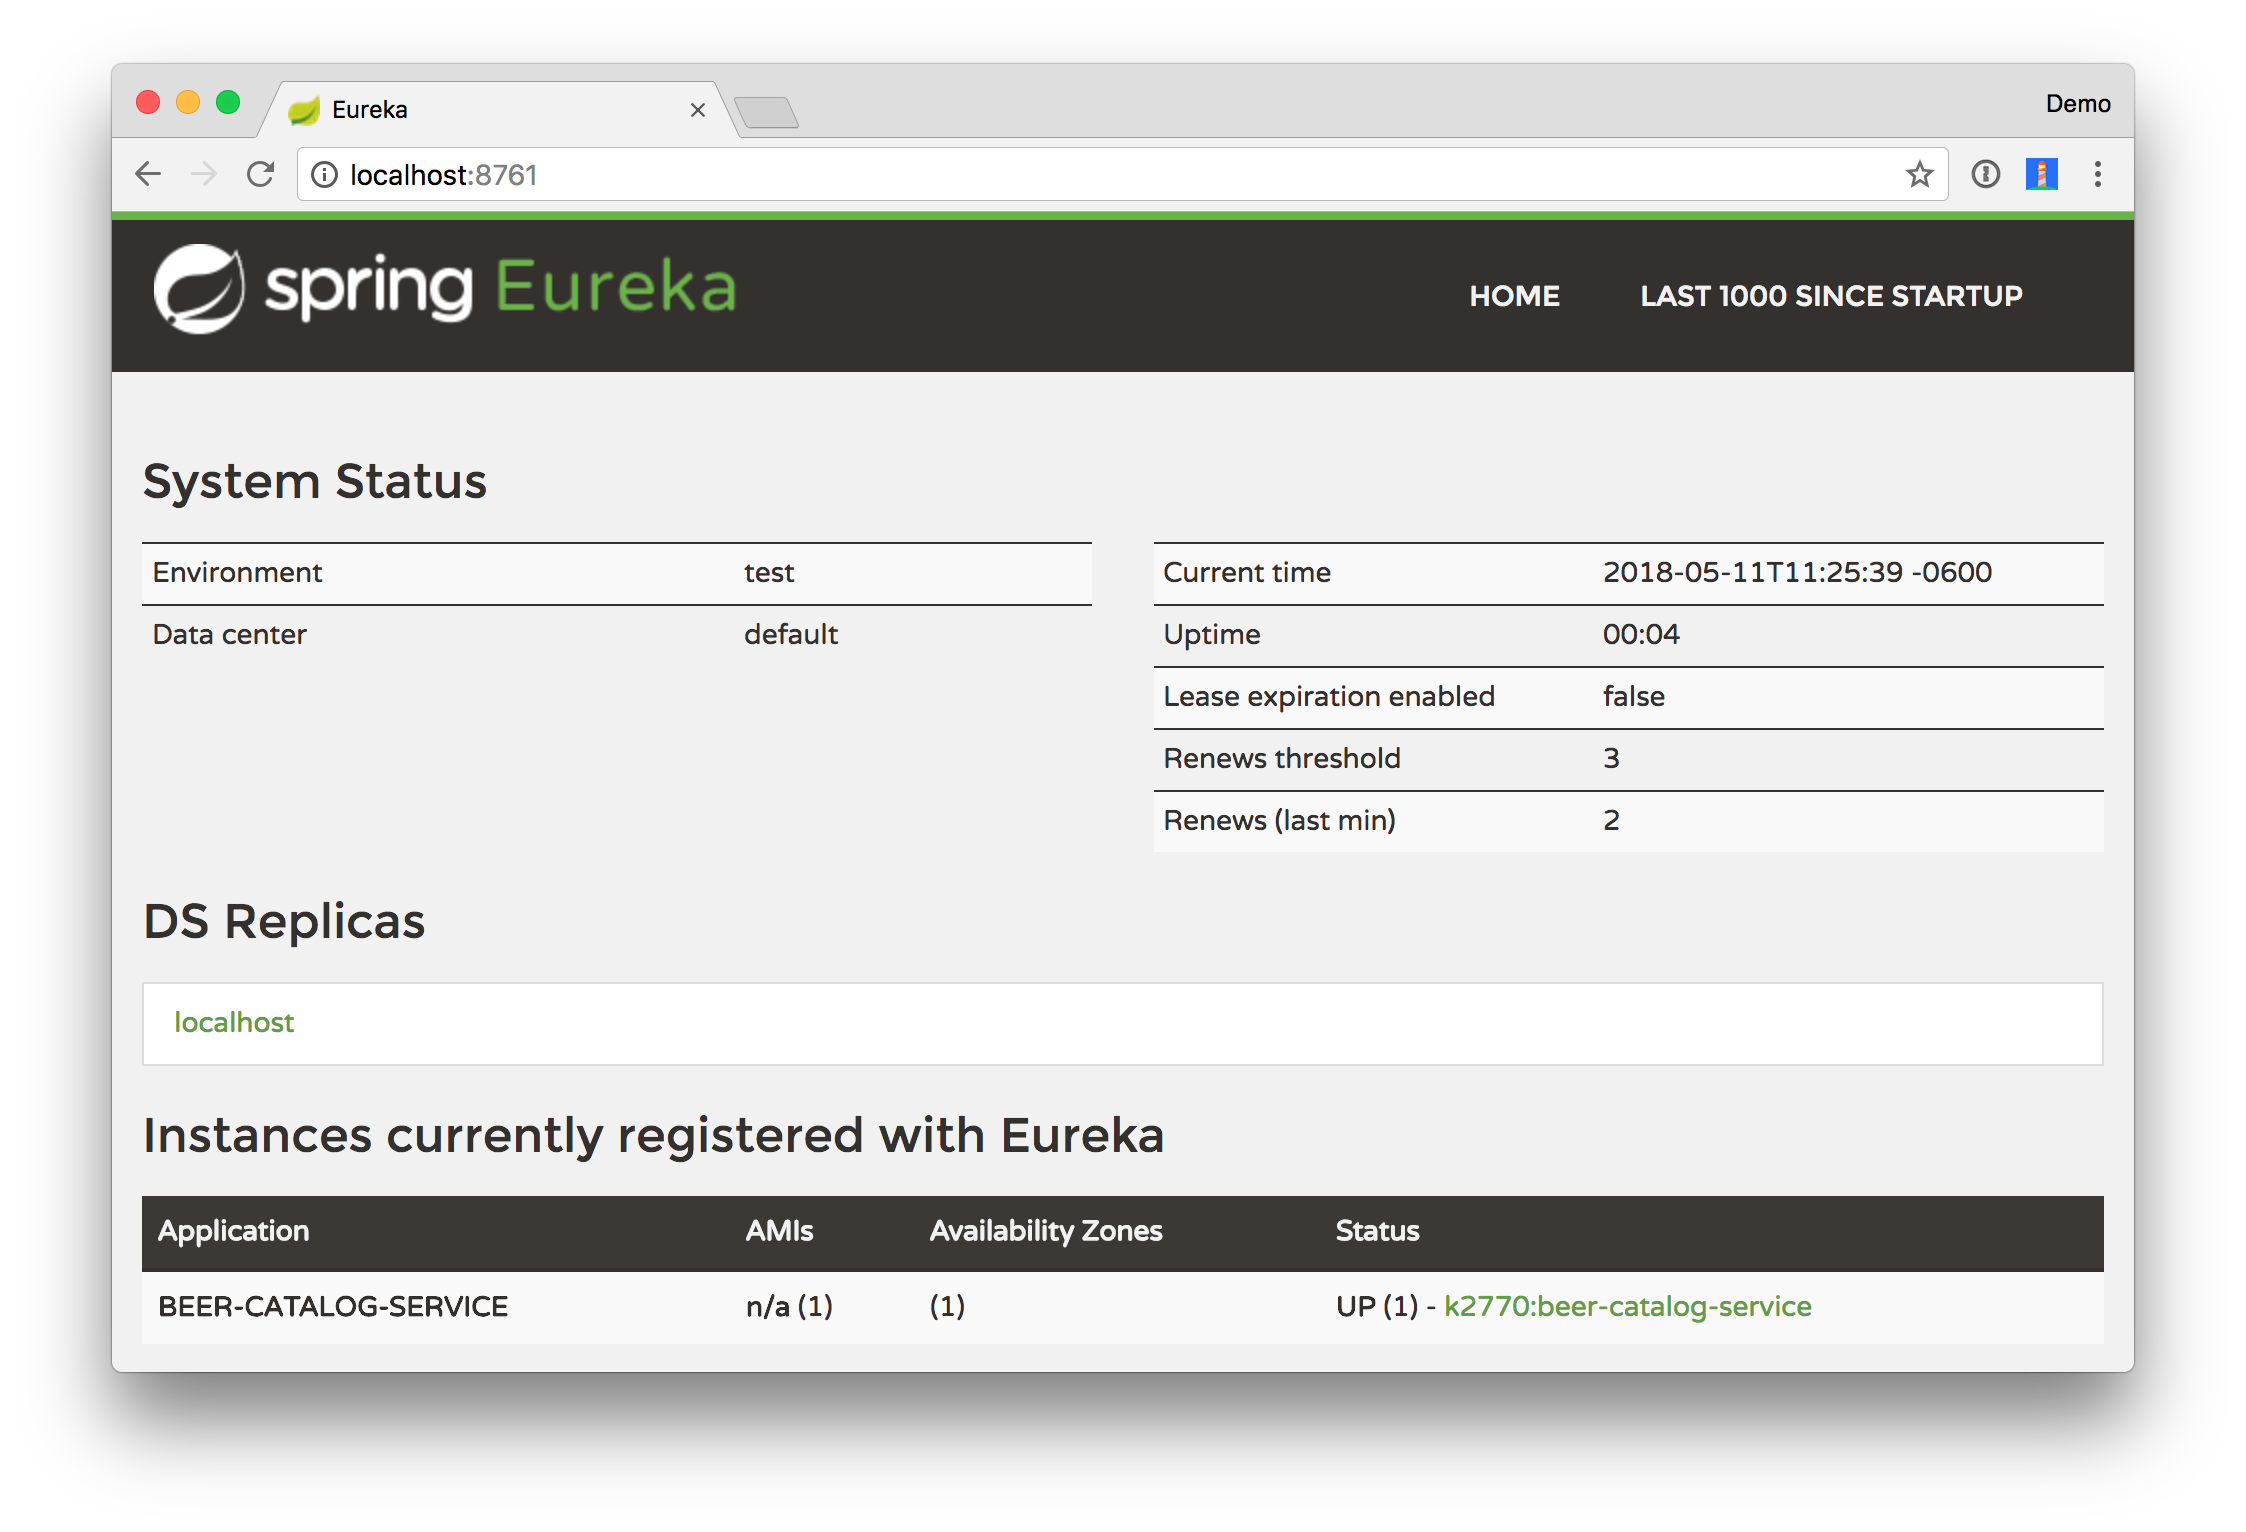 Eureka instances registered